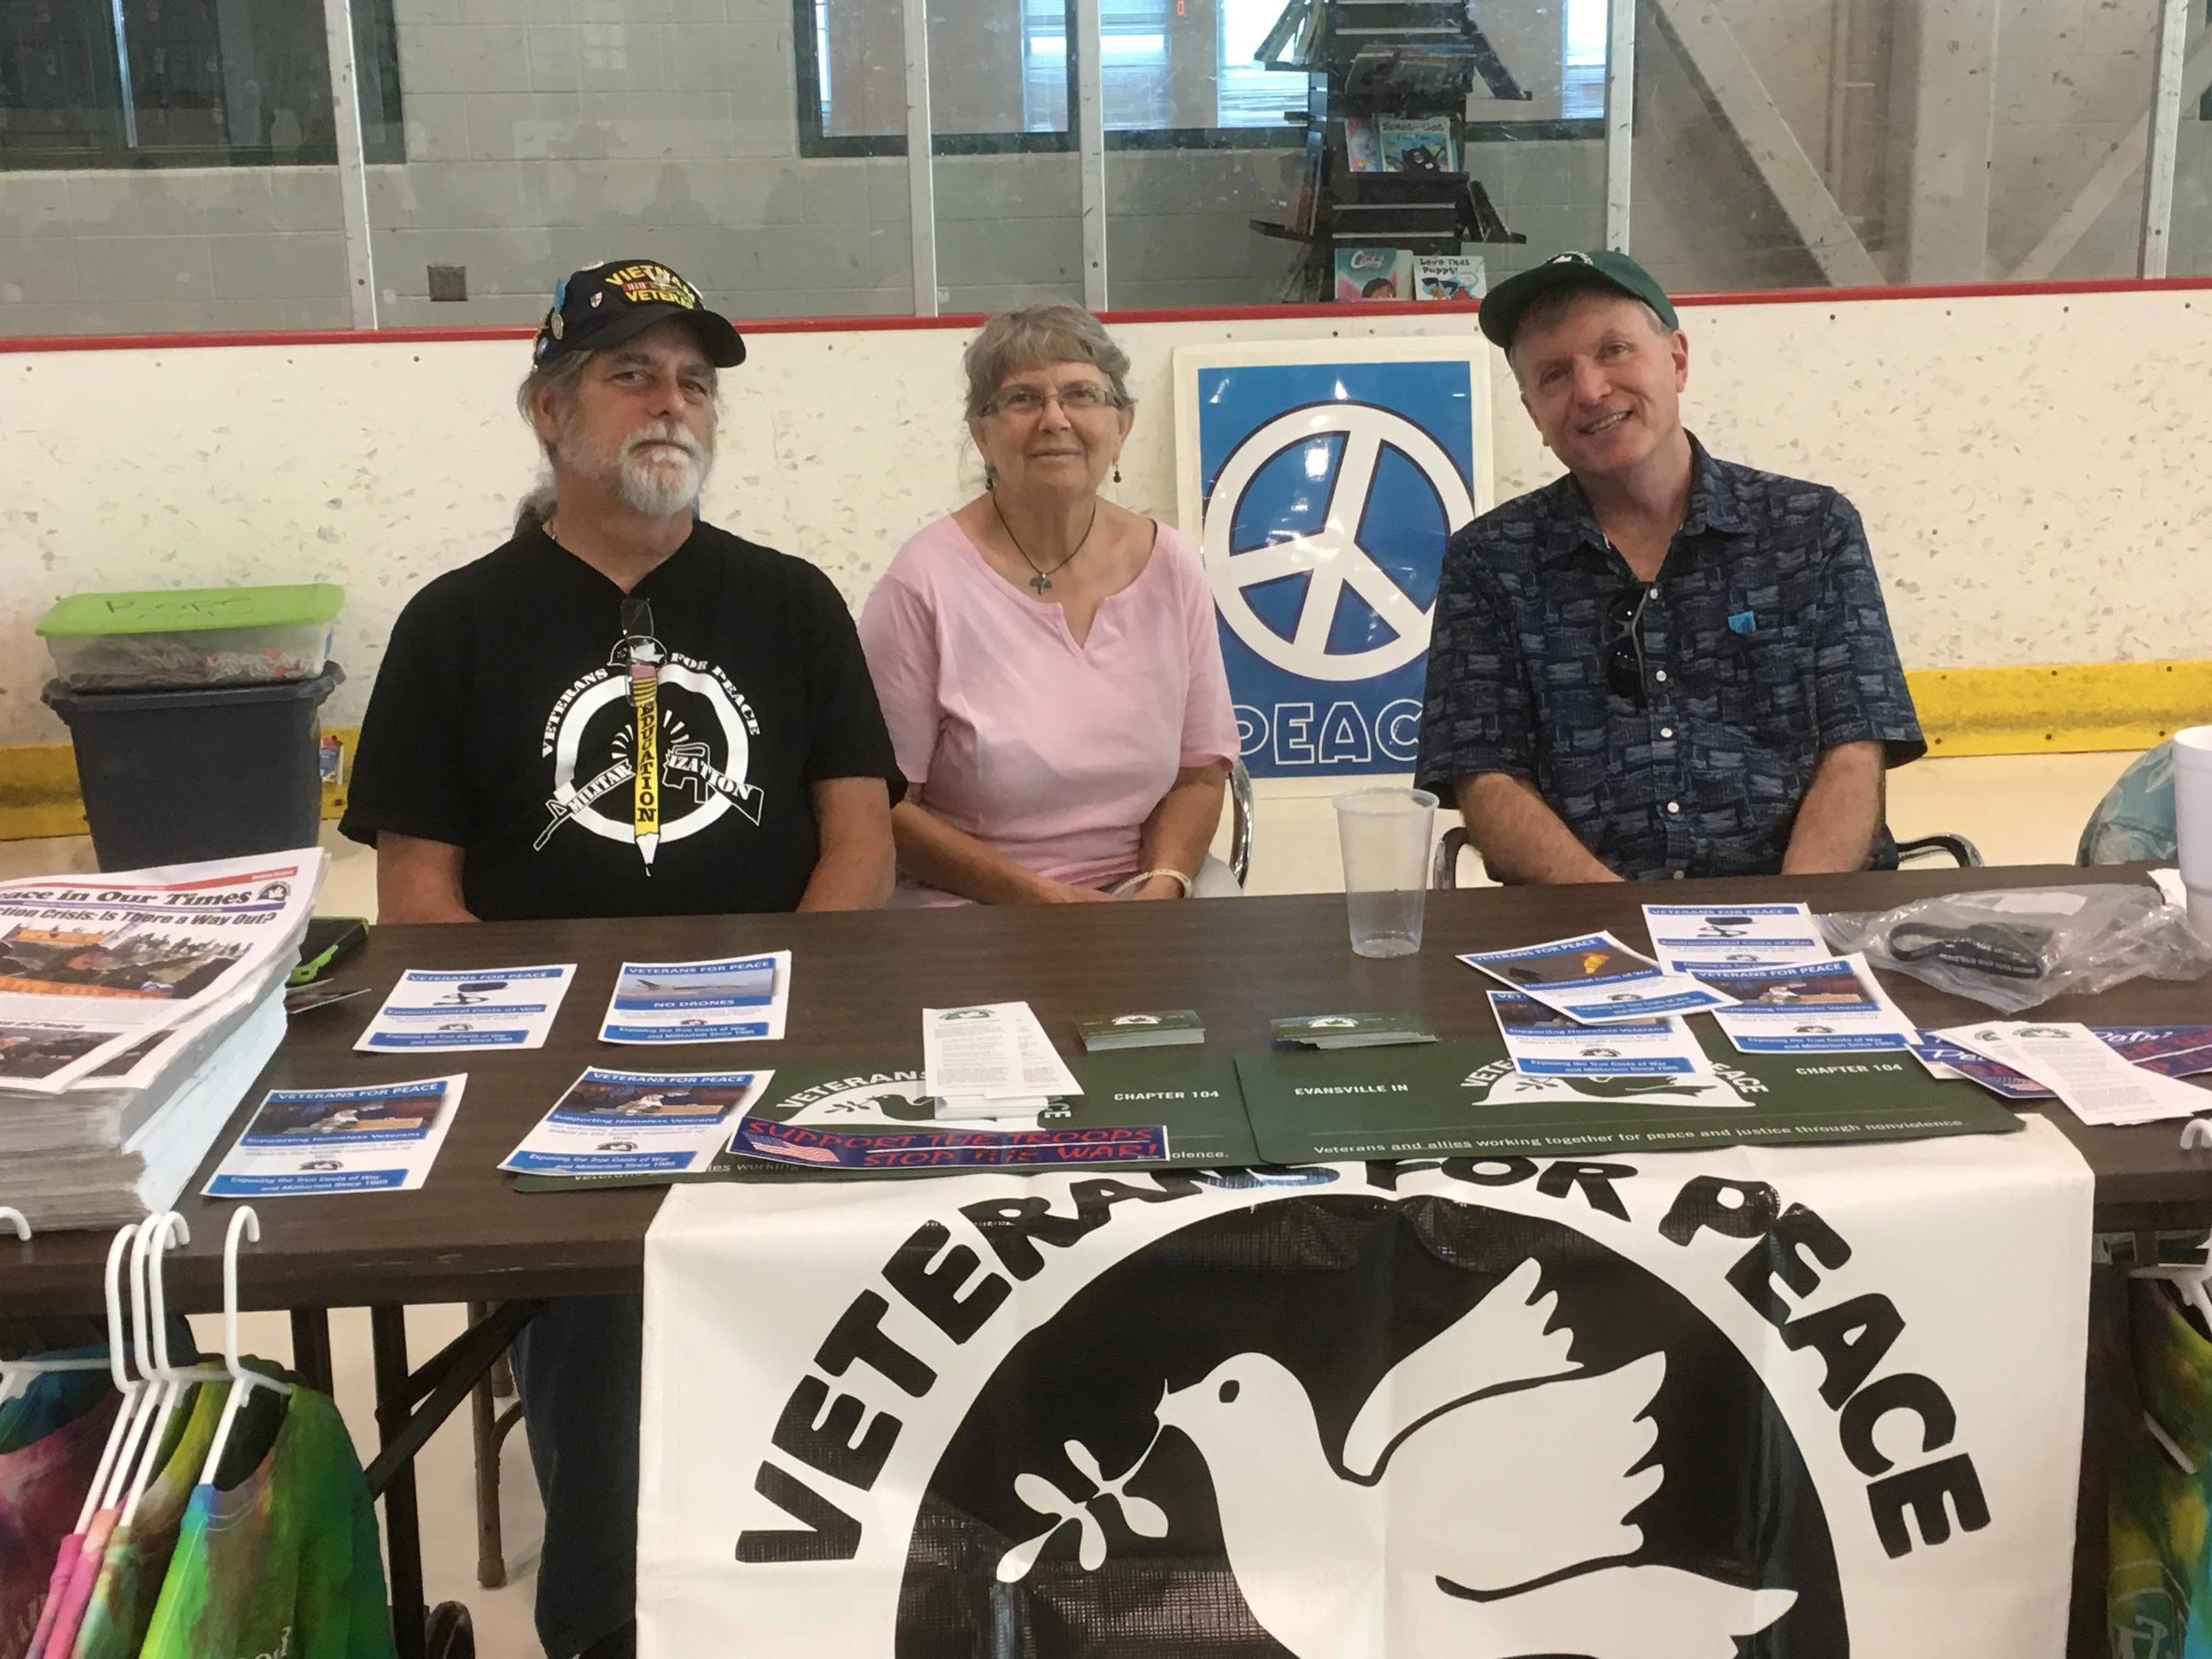 Veteran member Stan Lightner and associate members Caroline Nellis and John O'Leary people the VFP table (while veteran member Alan Williamson snaps this photo) at Swonder Arena during a recent match between Evansville's Demolition City Roller Derby and the Dark River Derby Coalition from Quincy, Illinois. Stan read the VFP statement of purpose over the PA during halftime to an attentive and respectful audience. Although the visiting team prevailed, Evansville's hometown ladies showed extraordinary tenacity and grit!